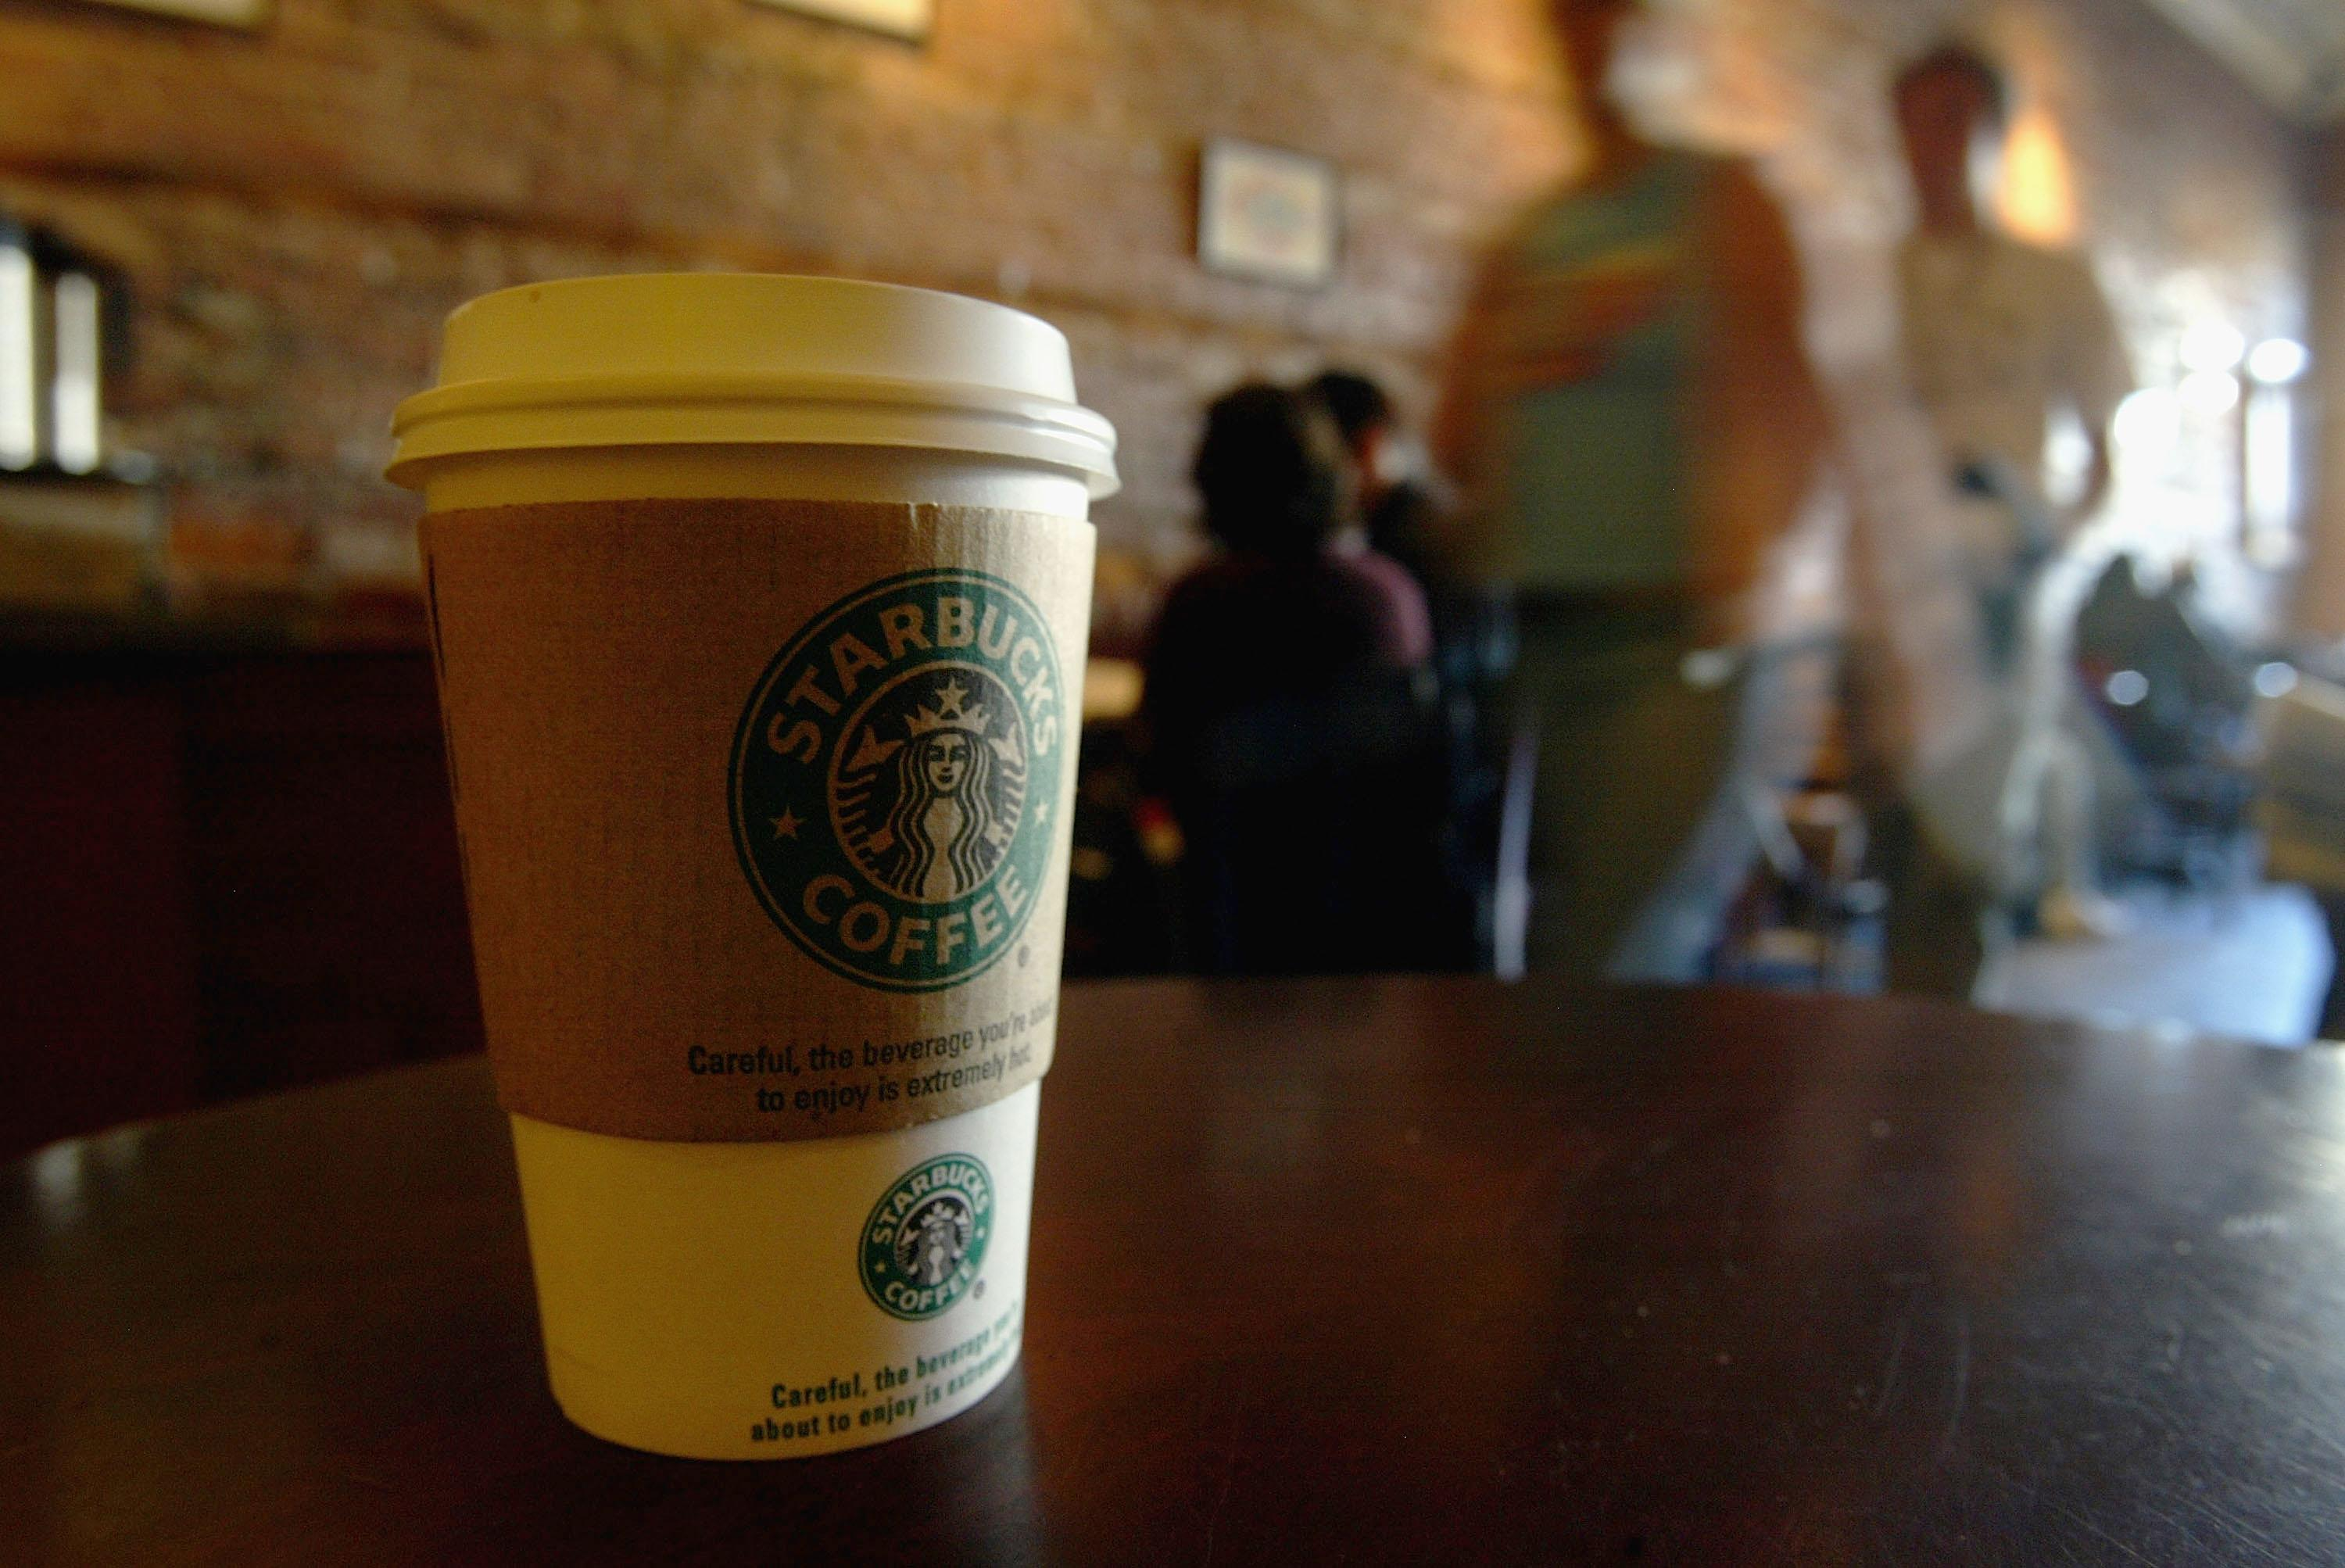 Starbucks apologizes for slur on customer's order